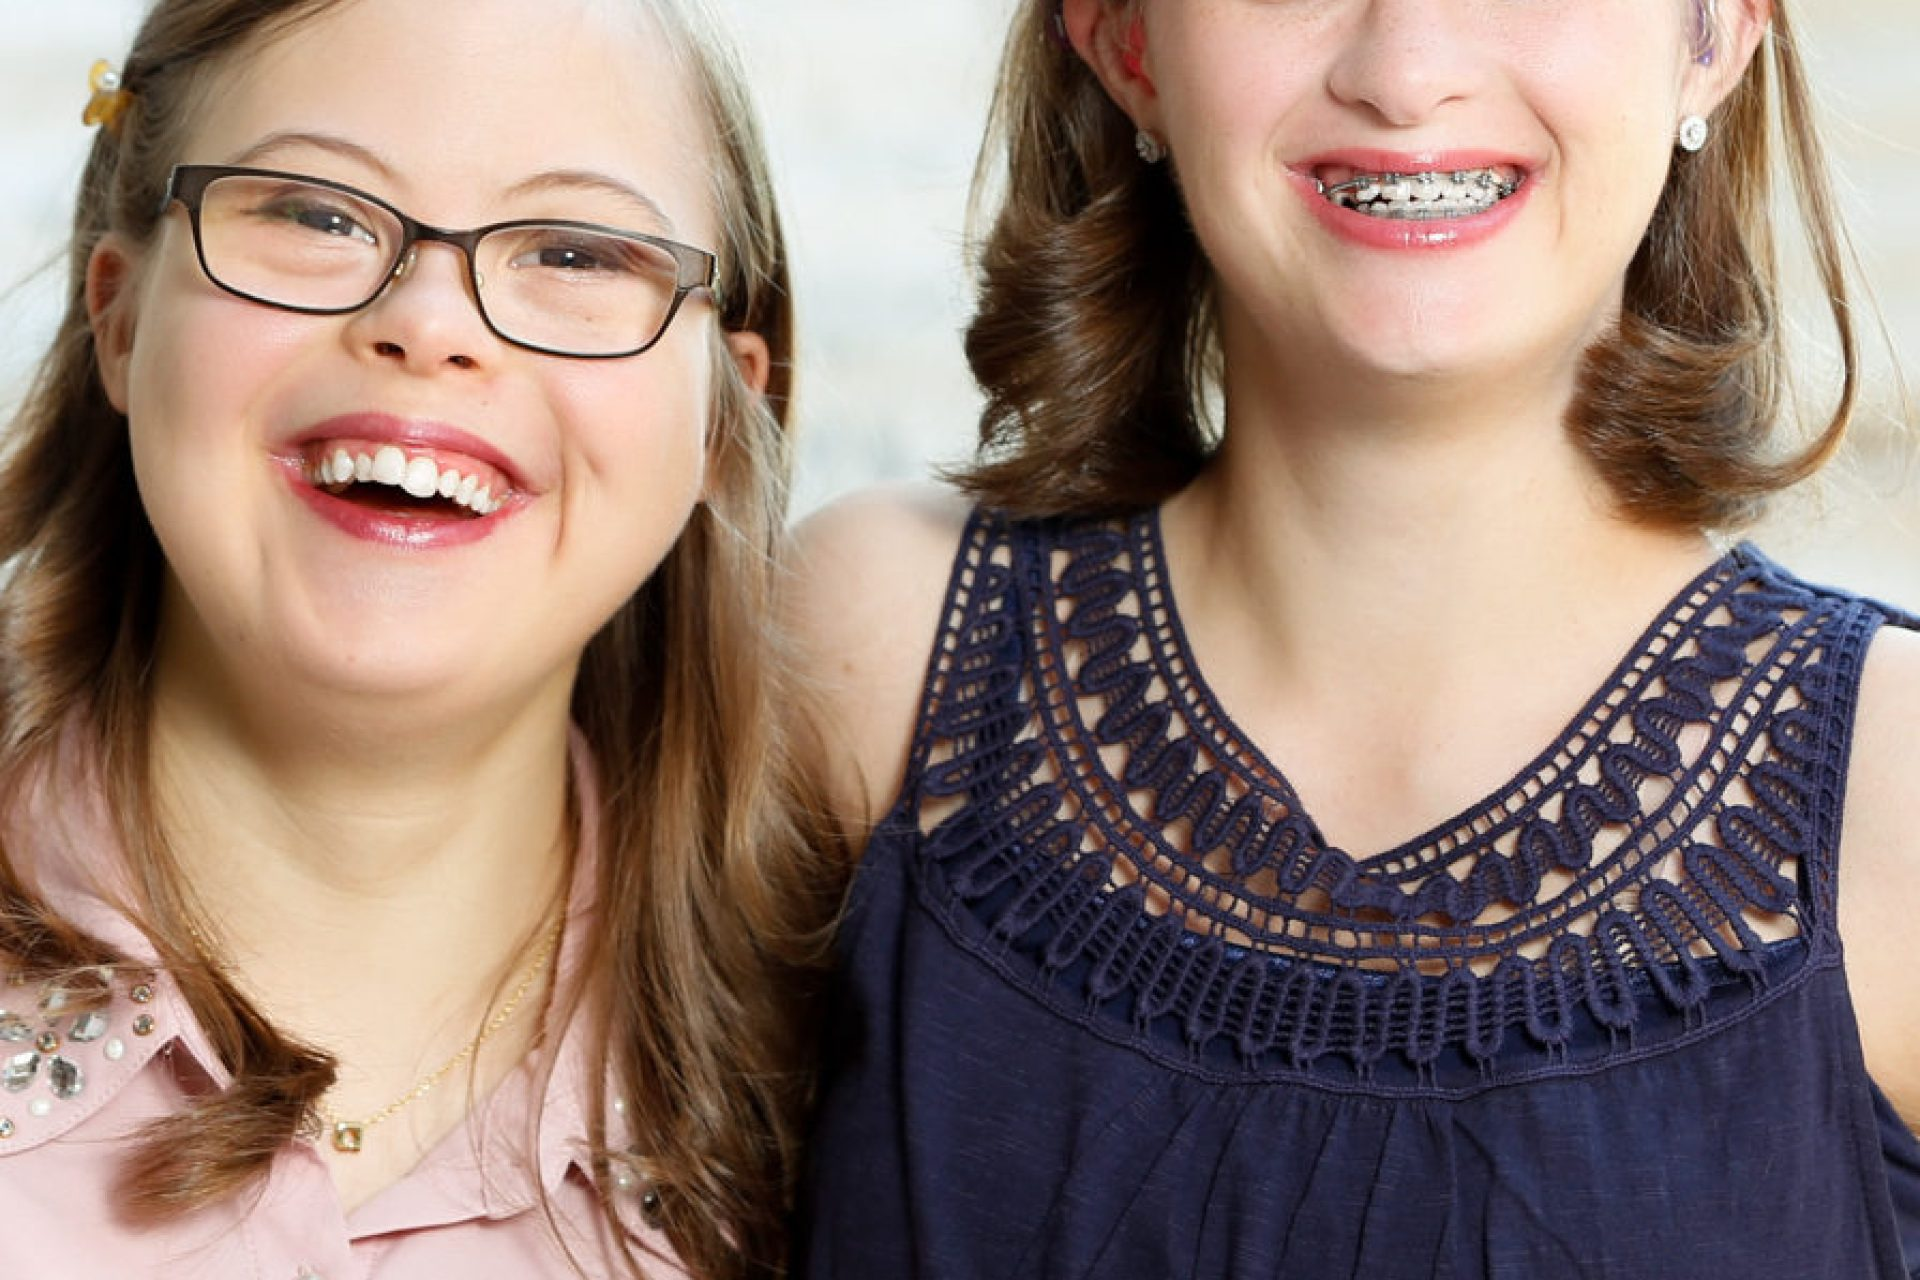 These two friends are apart of a special dance company of individuals with special needs. They have down-syndrome and go out to educate people in the community about how they are just like everybody else, but with an extra chromosome.